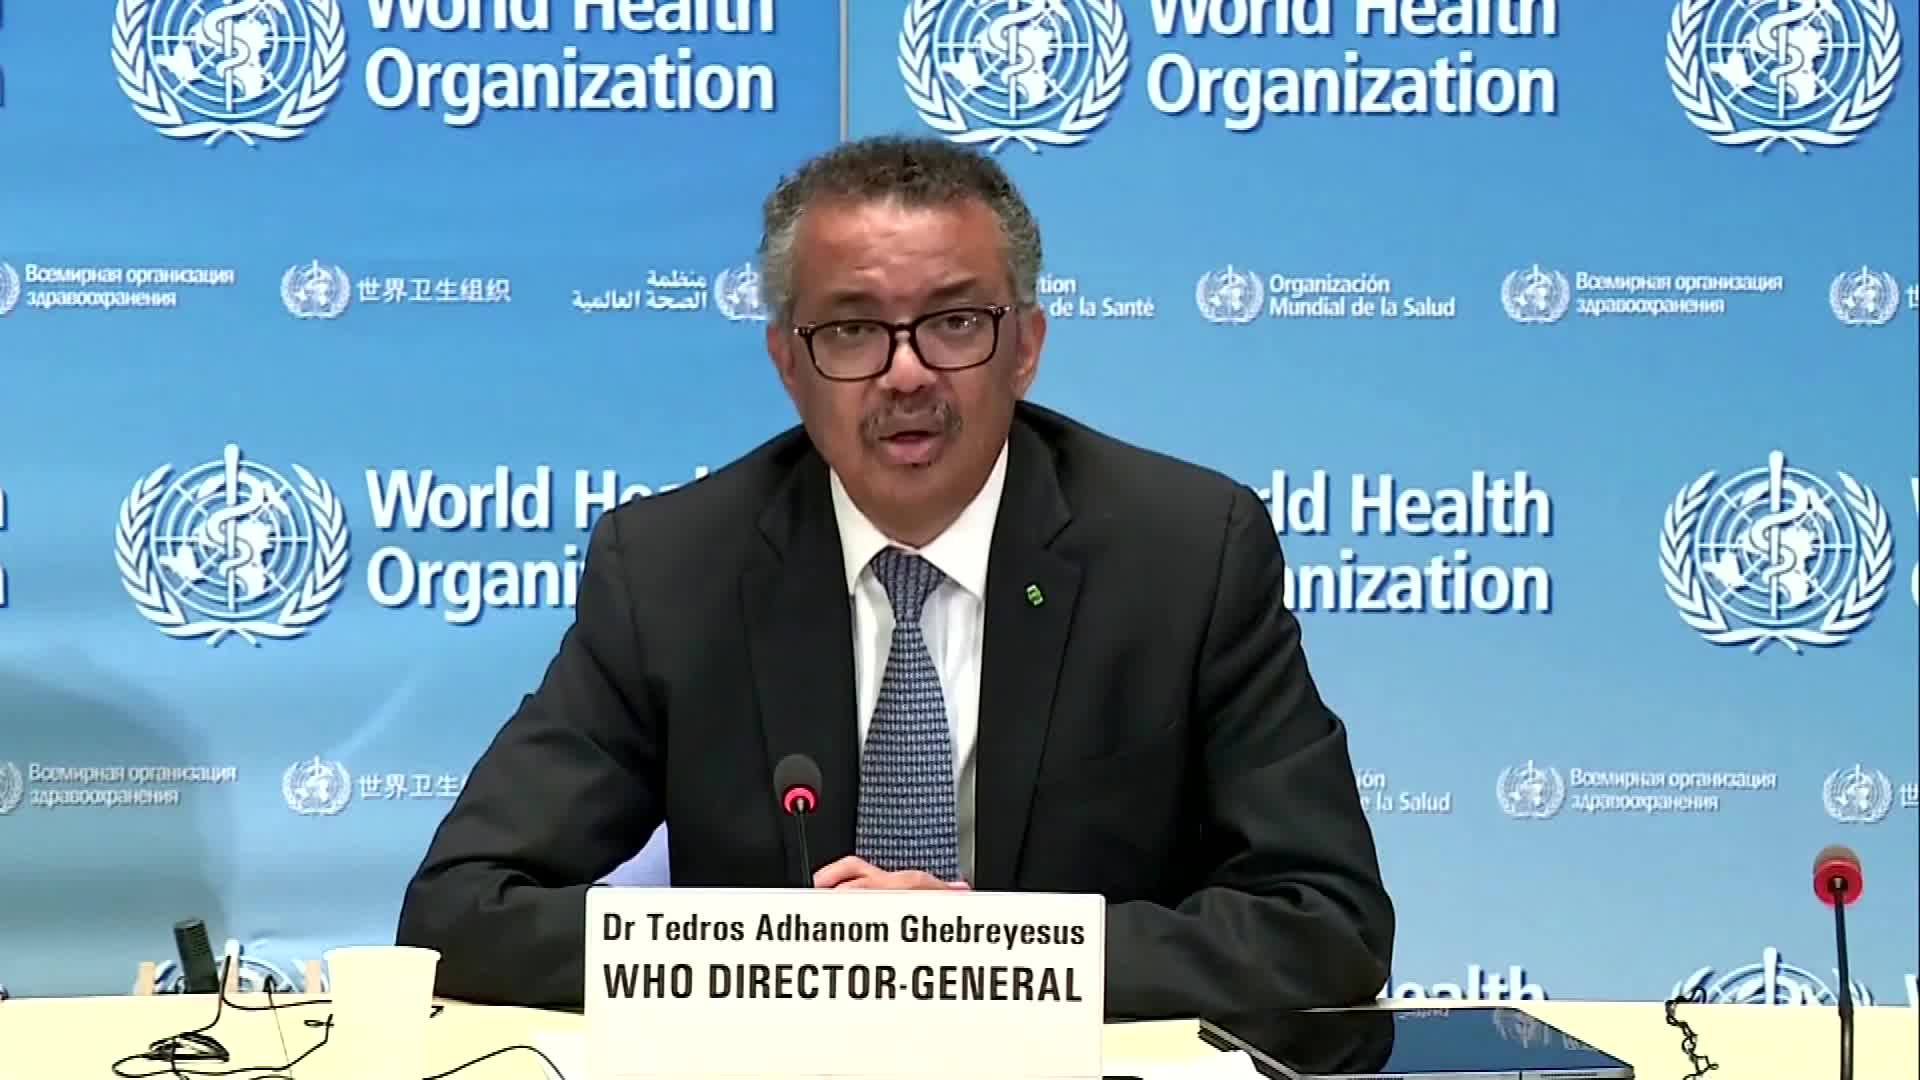 WHO Director-General Tedros Adhanom Ghebreyesus speaks during a media briefing on April 22, in Geneva, Switzerland.